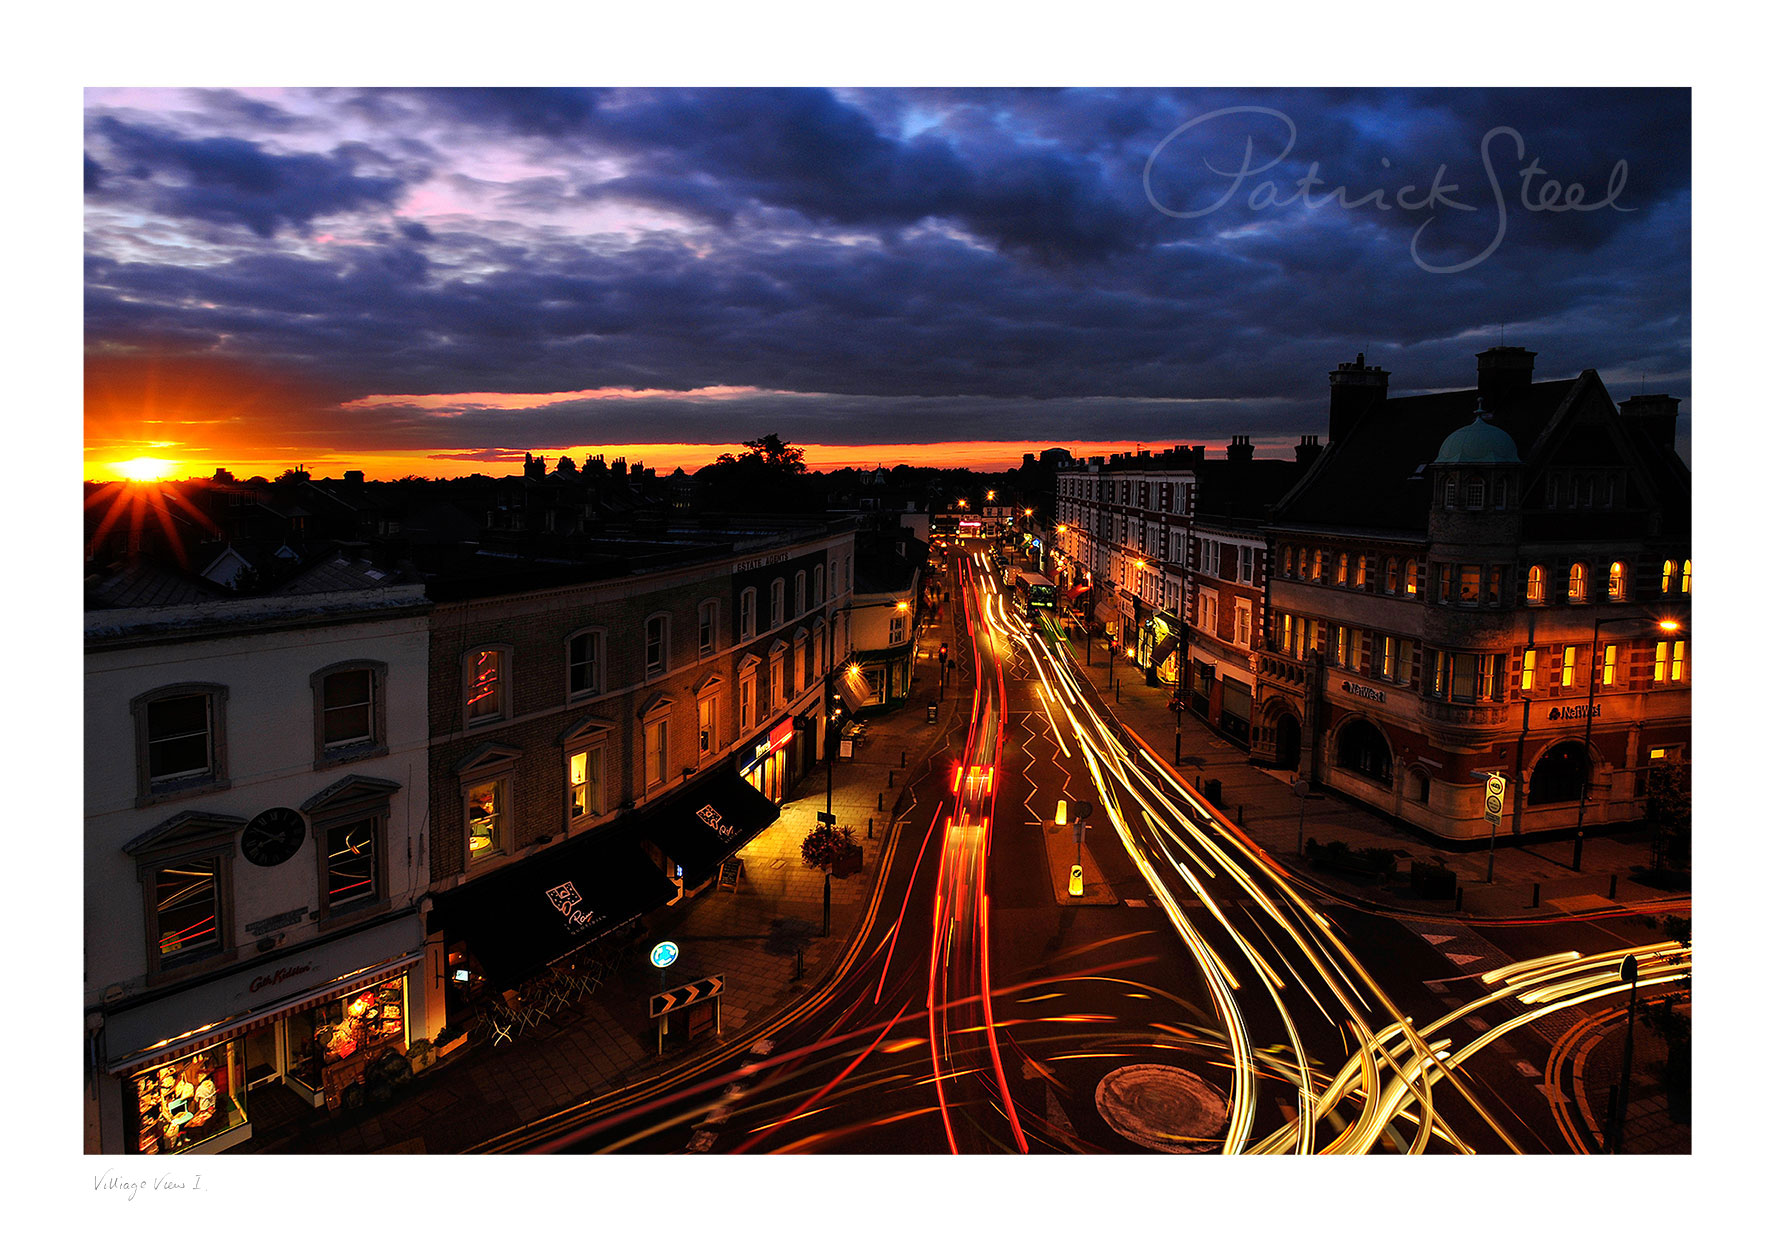 Photograph of Wimbledon Village High Street by Patrick Steel